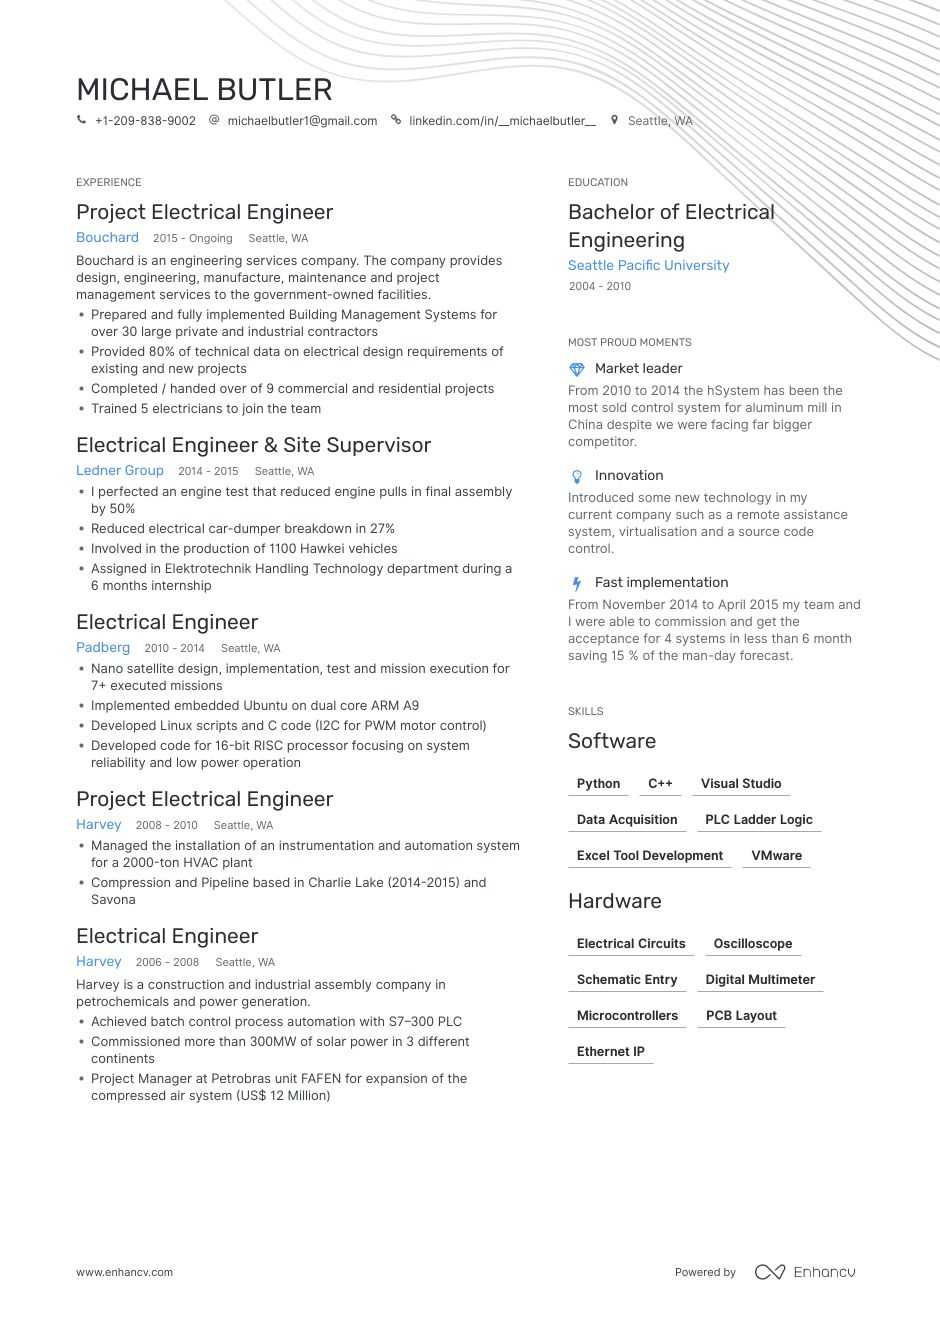 electrical engineer resume examples pro tips featured enhancv tool design example Resume Tool Design Engineer Resume Example